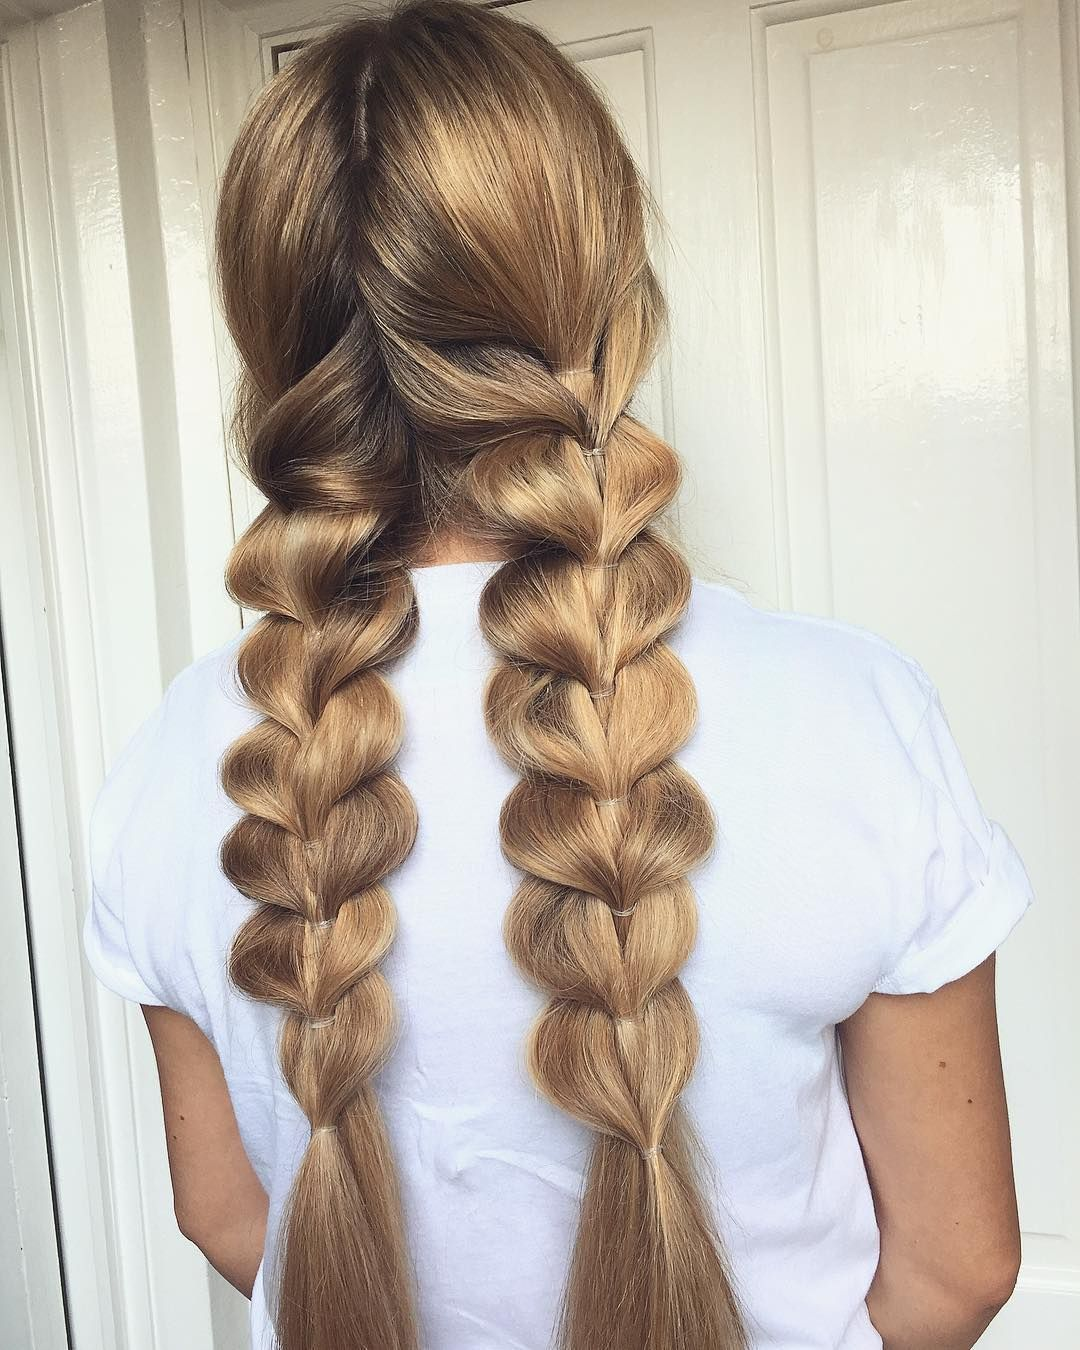 "Gorgeous Braid Hairstyle Inspiration , braids <a class=""pintag"" href=""/explore/hairstyle/"" title=""#hairstyle explore Pinterest"">#hairstyle</a> <a class=""pintag"" href=""/explore/braids/"" title=""#braids explore Pinterest"">#braids</a> <a class=""pintag"" href=""/explore/hair/"" title=""#hair explore Pinterest"">#hair</a> <a class=""pintag"" href=""/explore/weddinghairstyle/"" title=""#weddinghairstyle explore Pinterest"">#weddinghairstyle</a> <a class=""pintag"" href=""/explore/Hairstyle/"" title=""#Hairstyle explore Pinterest"">#Hairstyle</a> <a class=""pintag"" href=""/explore/Braid/"" title=""#Braid explore Pinterest"">#Braid</a> <a class=""pintag"" href=""/explore/BraidIdeas/"" title=""#BraidIdeas explore Pinterest"">#BraidIdeas</a> <a class=""pintag"" href=""/explore/BraidInspo/"" title=""#BraidInspo explore Pinterest"">#BraidInspo</a> <a class=""pintag"" href=""/explore/BraidedHair/"" title=""#BraidedHair explore Pinterest"">#BraidedHair</a> <a class=""pintag"" href=""/explore/Braidstyles/"" title=""#Braidstyles explore Pinterest"">#Braidstyles</a> <a class=""pintag"" href=""/explore/BangsHairstyleAsian/"" title=""#BangsHairstyleAsian explore Pinterest"">#BangsHairstyleAsian</a><p><a href=""http://www.homeinteriordesign.org/2018/02/short-guide-to-interior-decoration.html"">Short guide to interior decoration</a></p>"